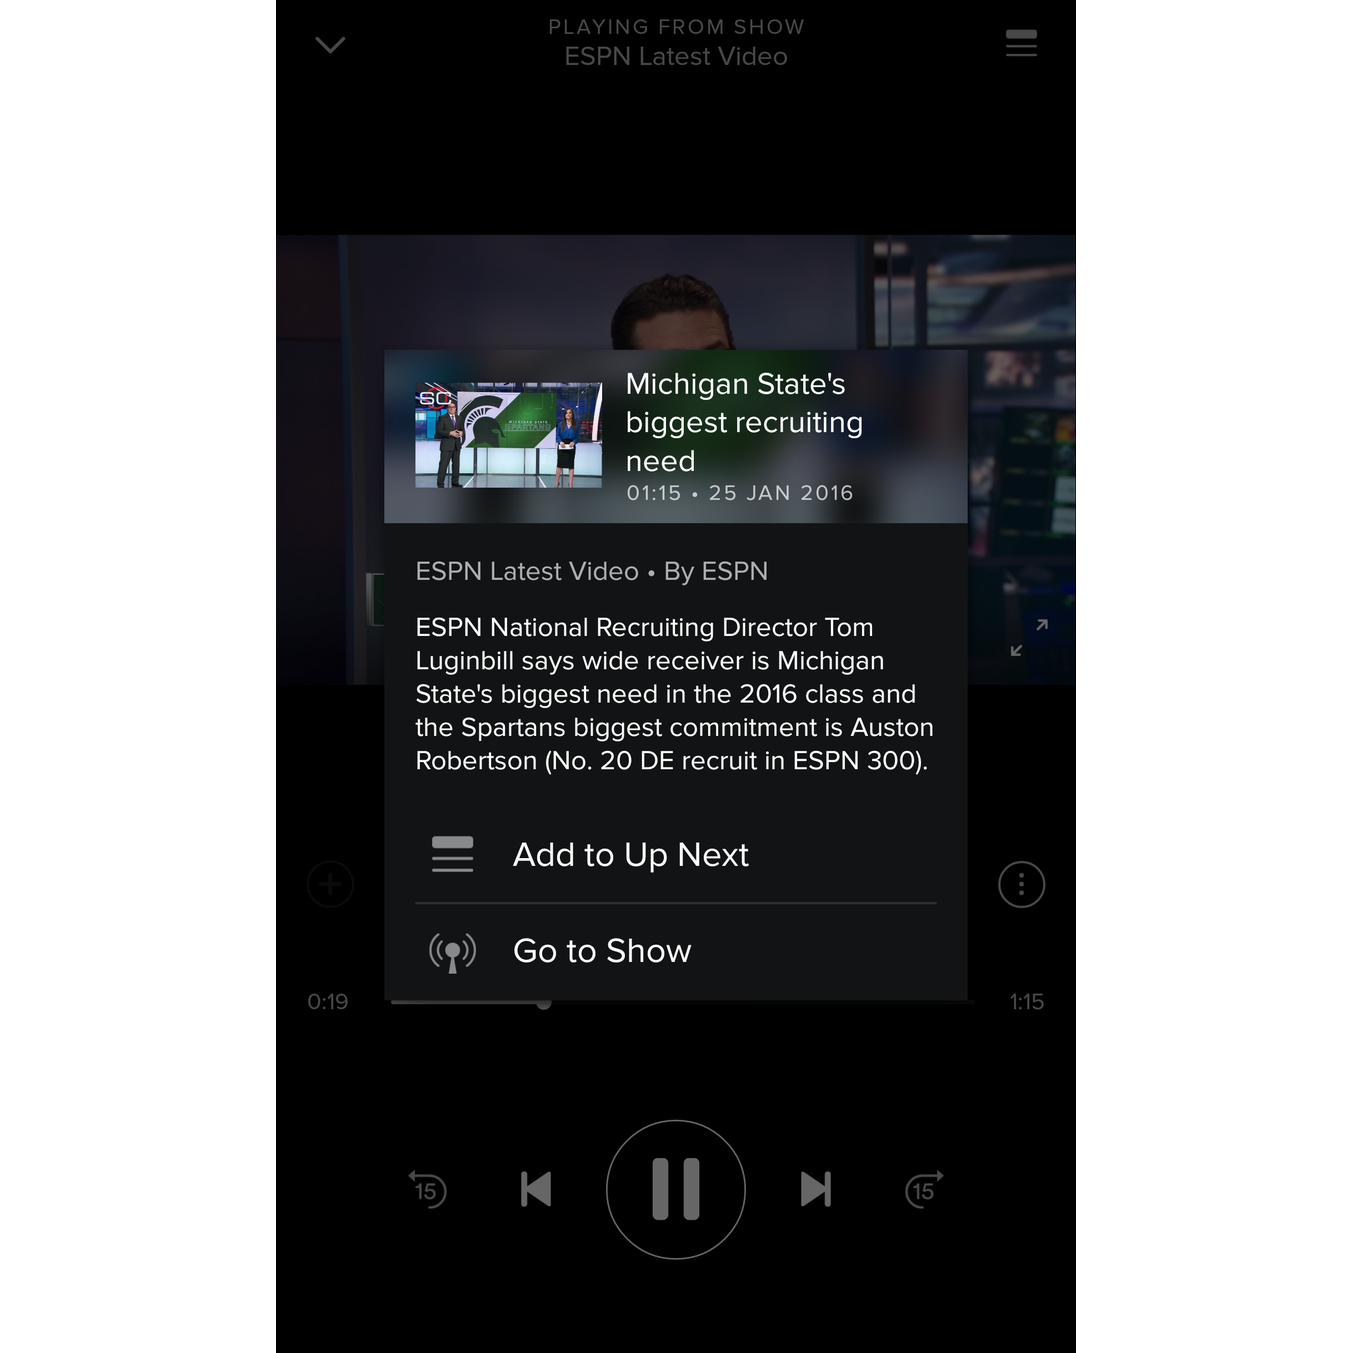 With Spotify you can already watch videos on Android and iOS 1